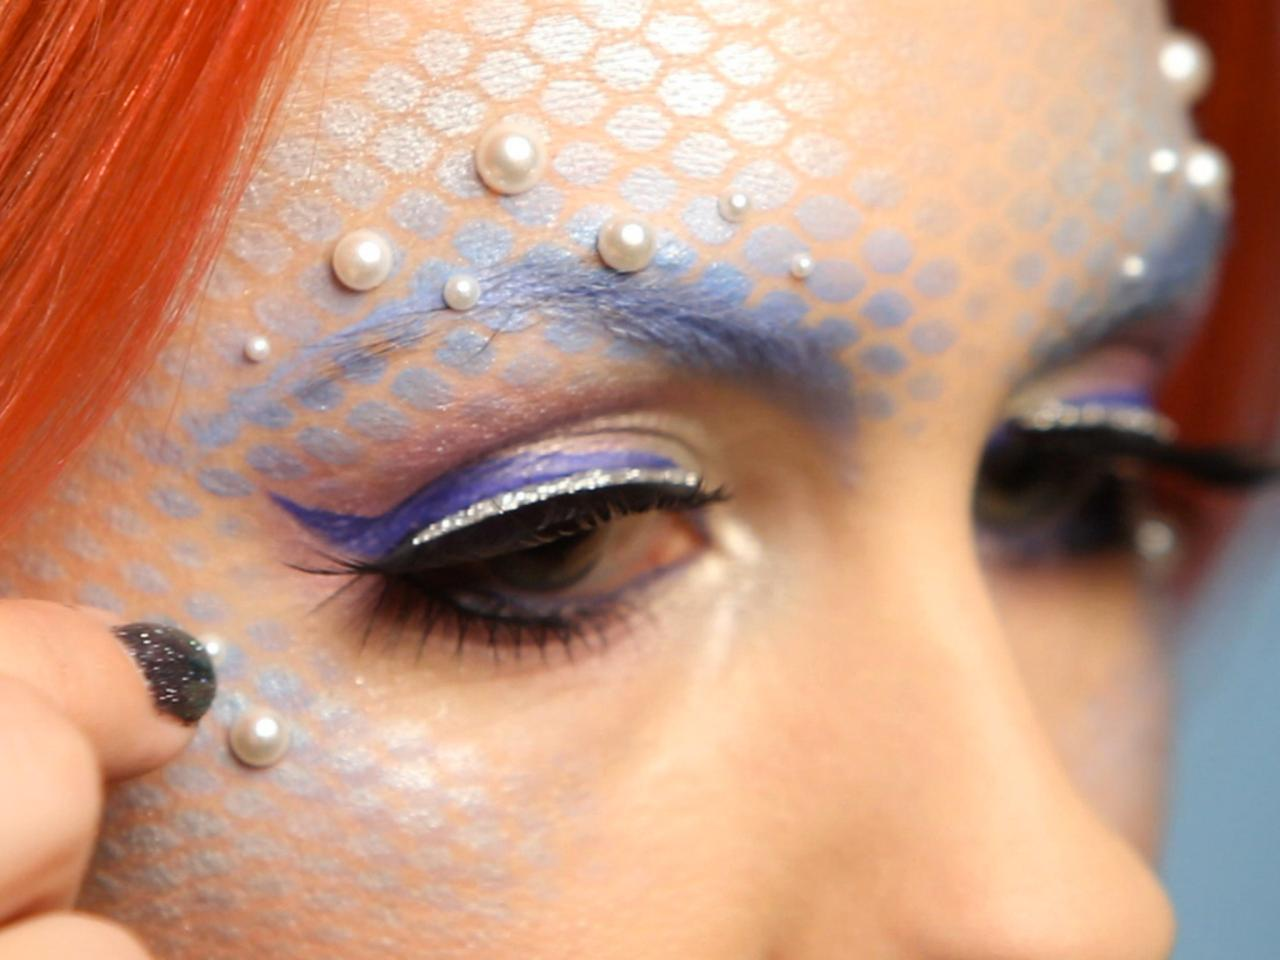 Halloween mermaid makeup for adults hgtv lashes for mermaid halloween costume solutioingenieria Image collections